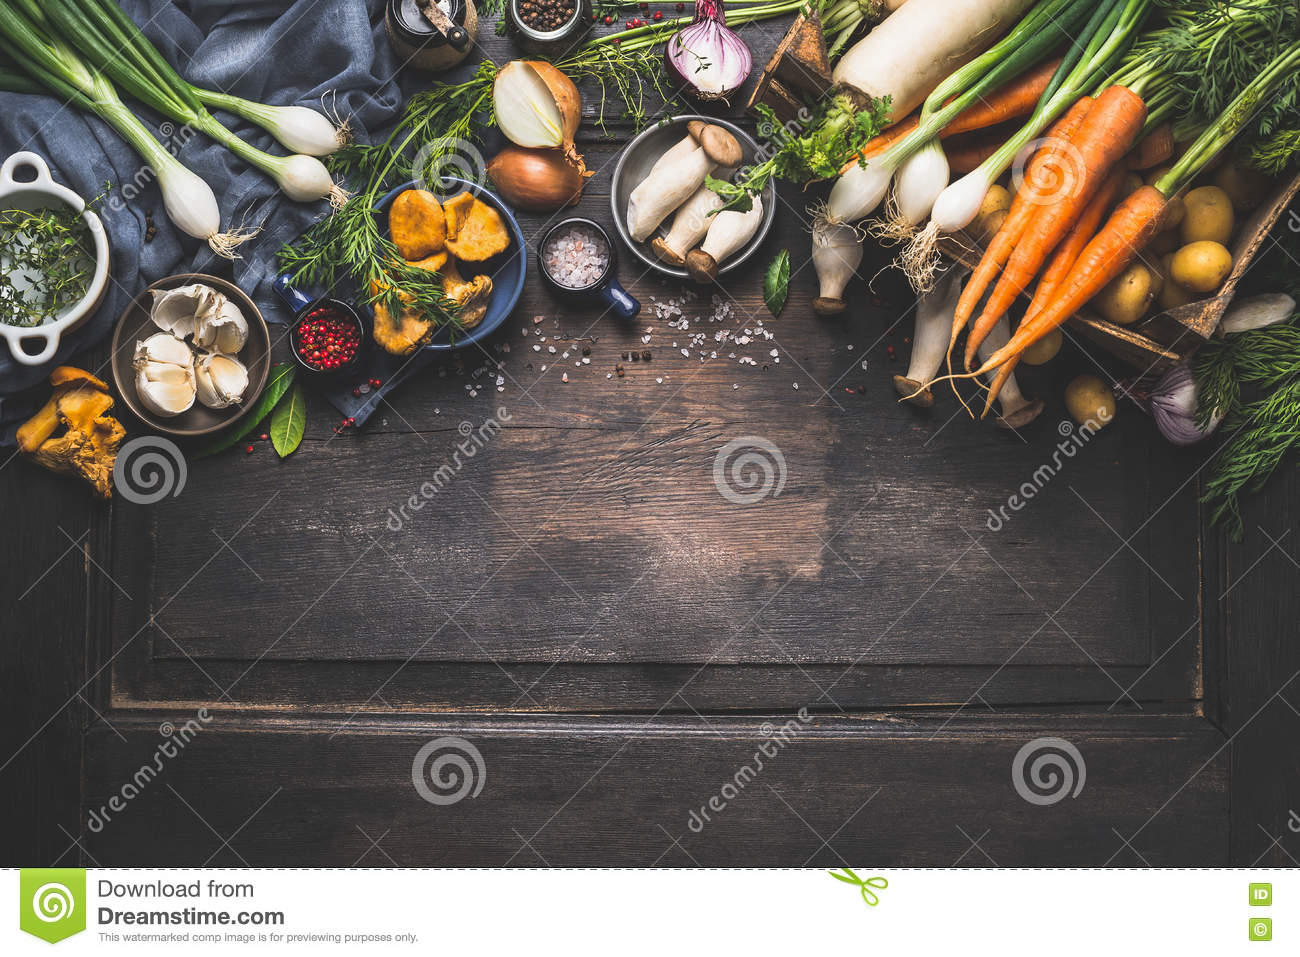 Organic harvest Vegetables from garden and forest mushrooms. Vegetarian ingredients for cooking on dark rustic wooden background